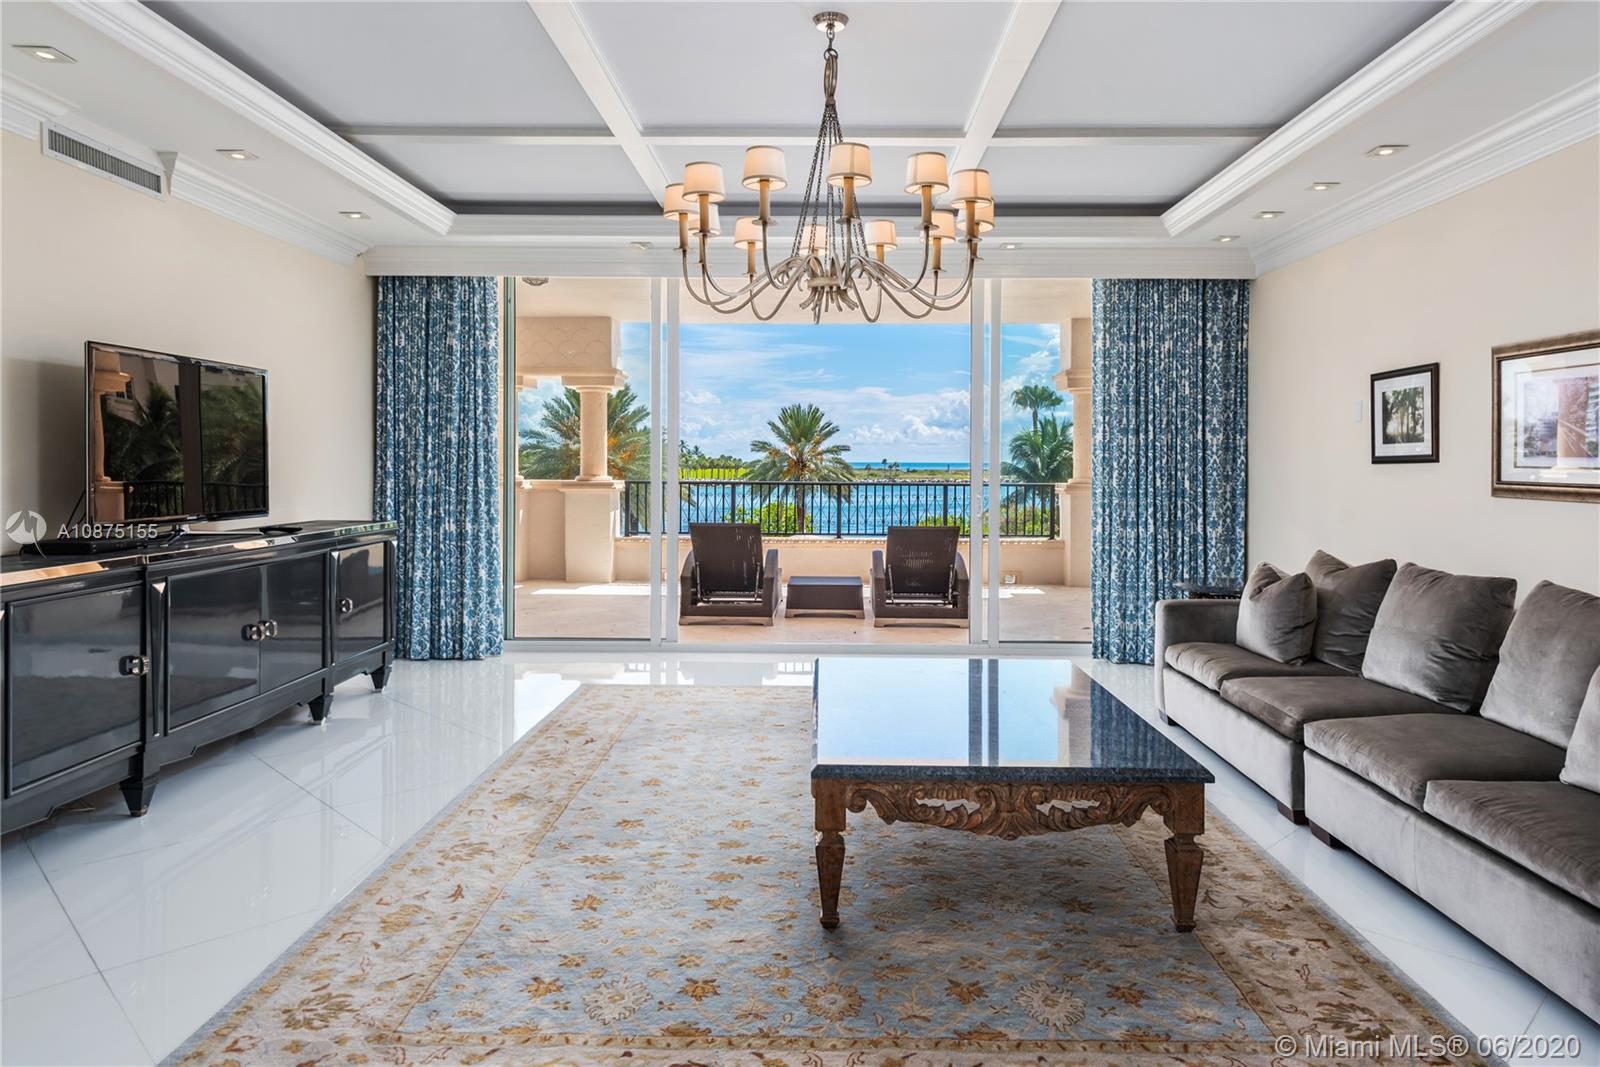 7124 Fisher Island Dr, Unit #7124 Luxury Real Estate